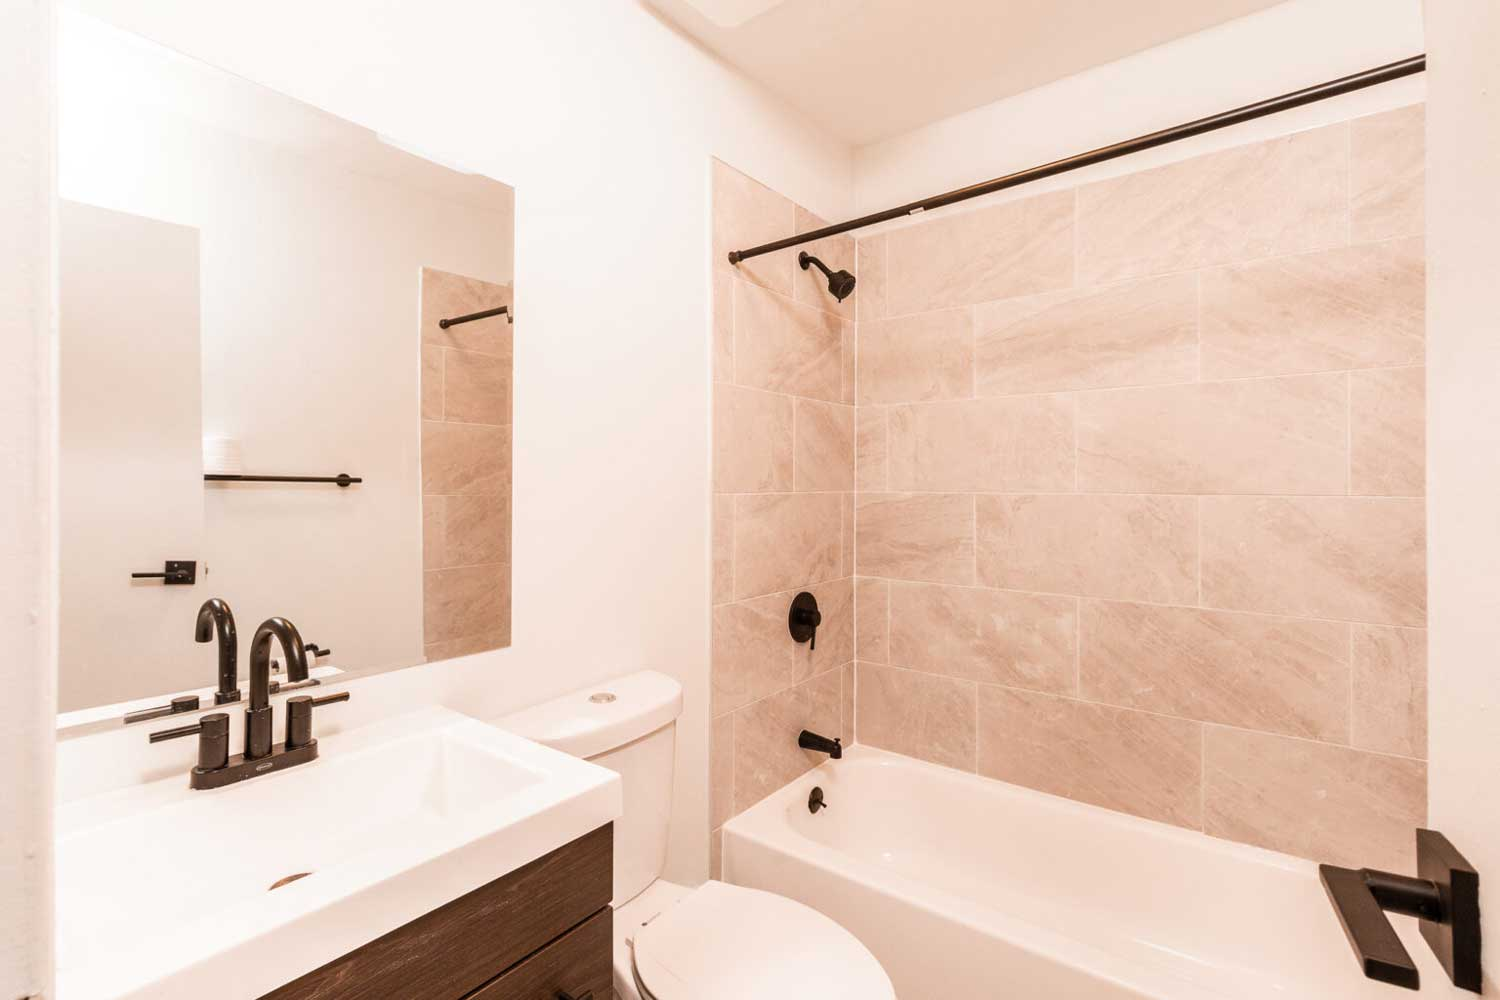 Bathroom at Hampton Gardens Apartments in Middlesex, New Jersey